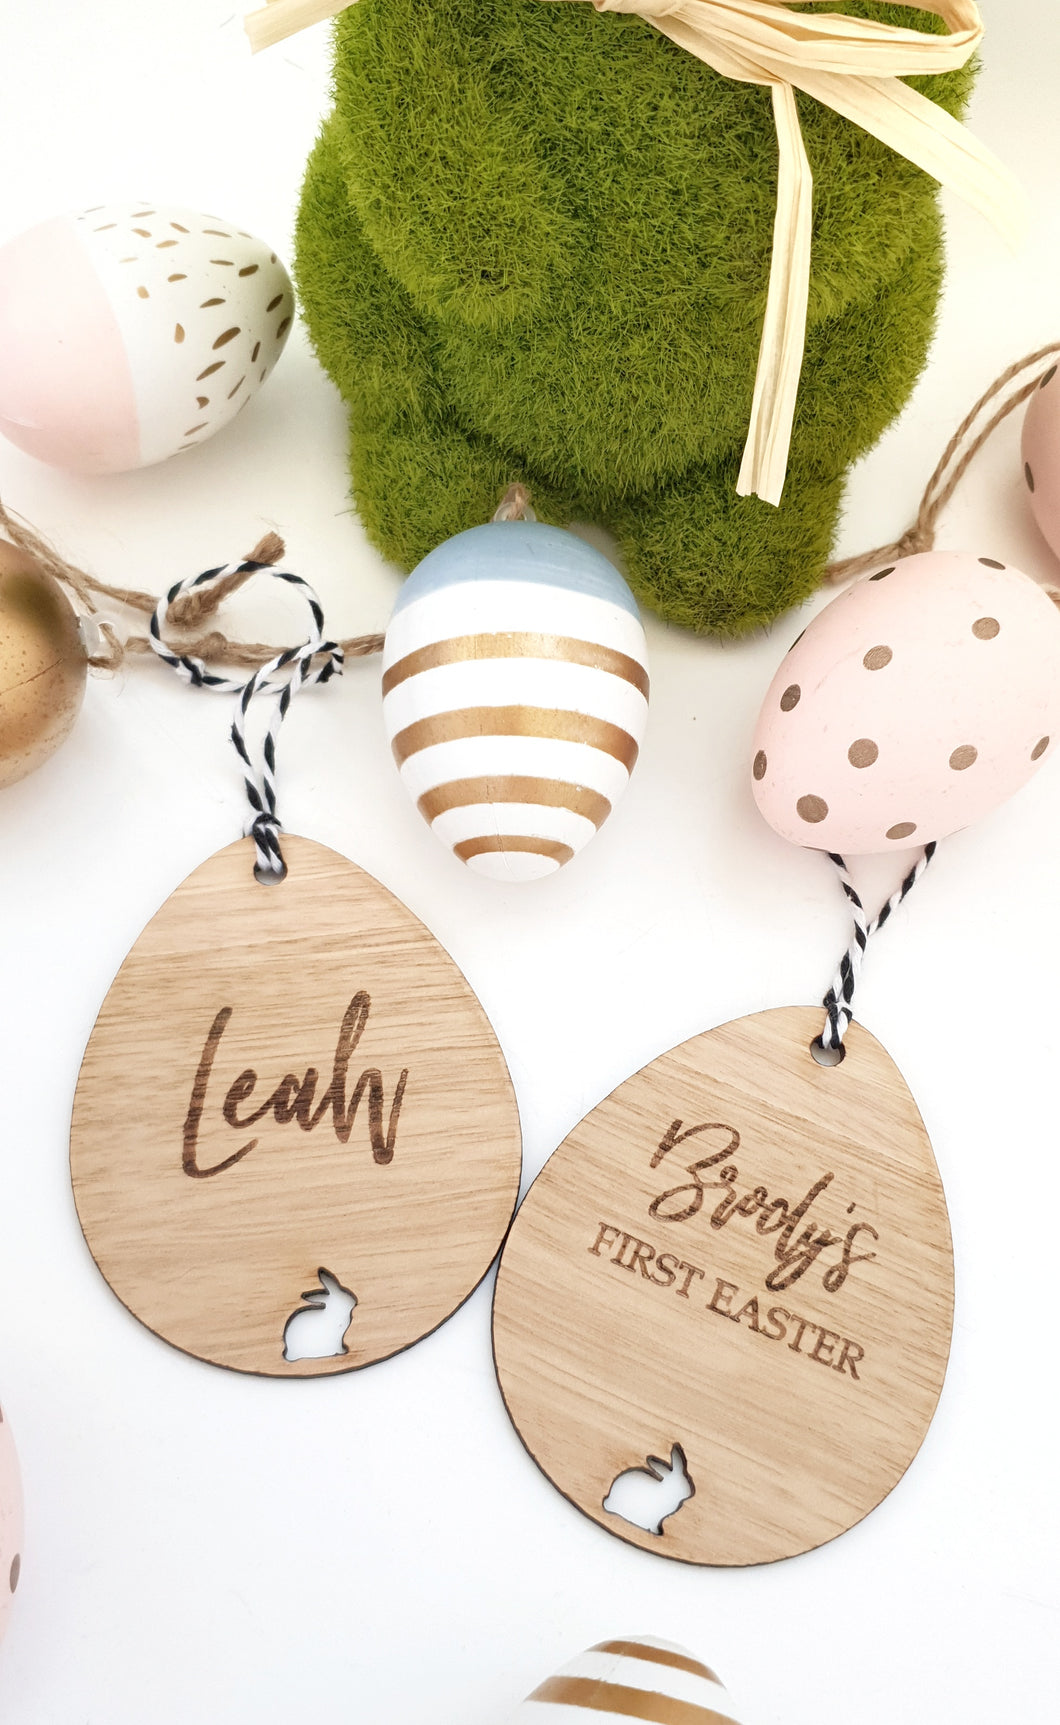 Easter Egg Basket Tag/Ornament